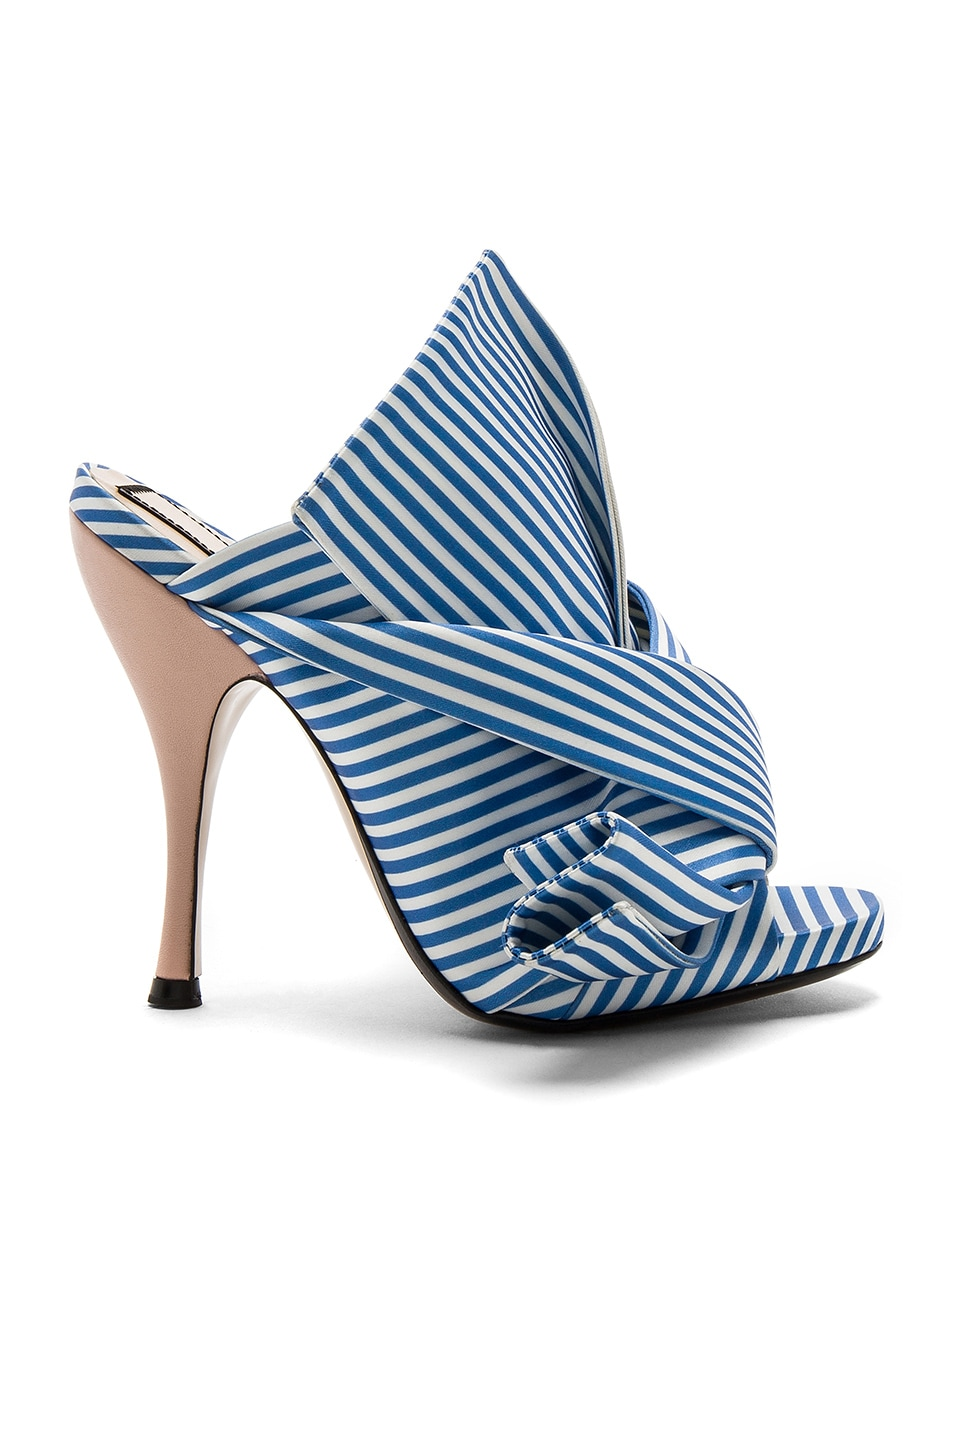 No. 21 Open Toe Heel in Blue & White Stripe